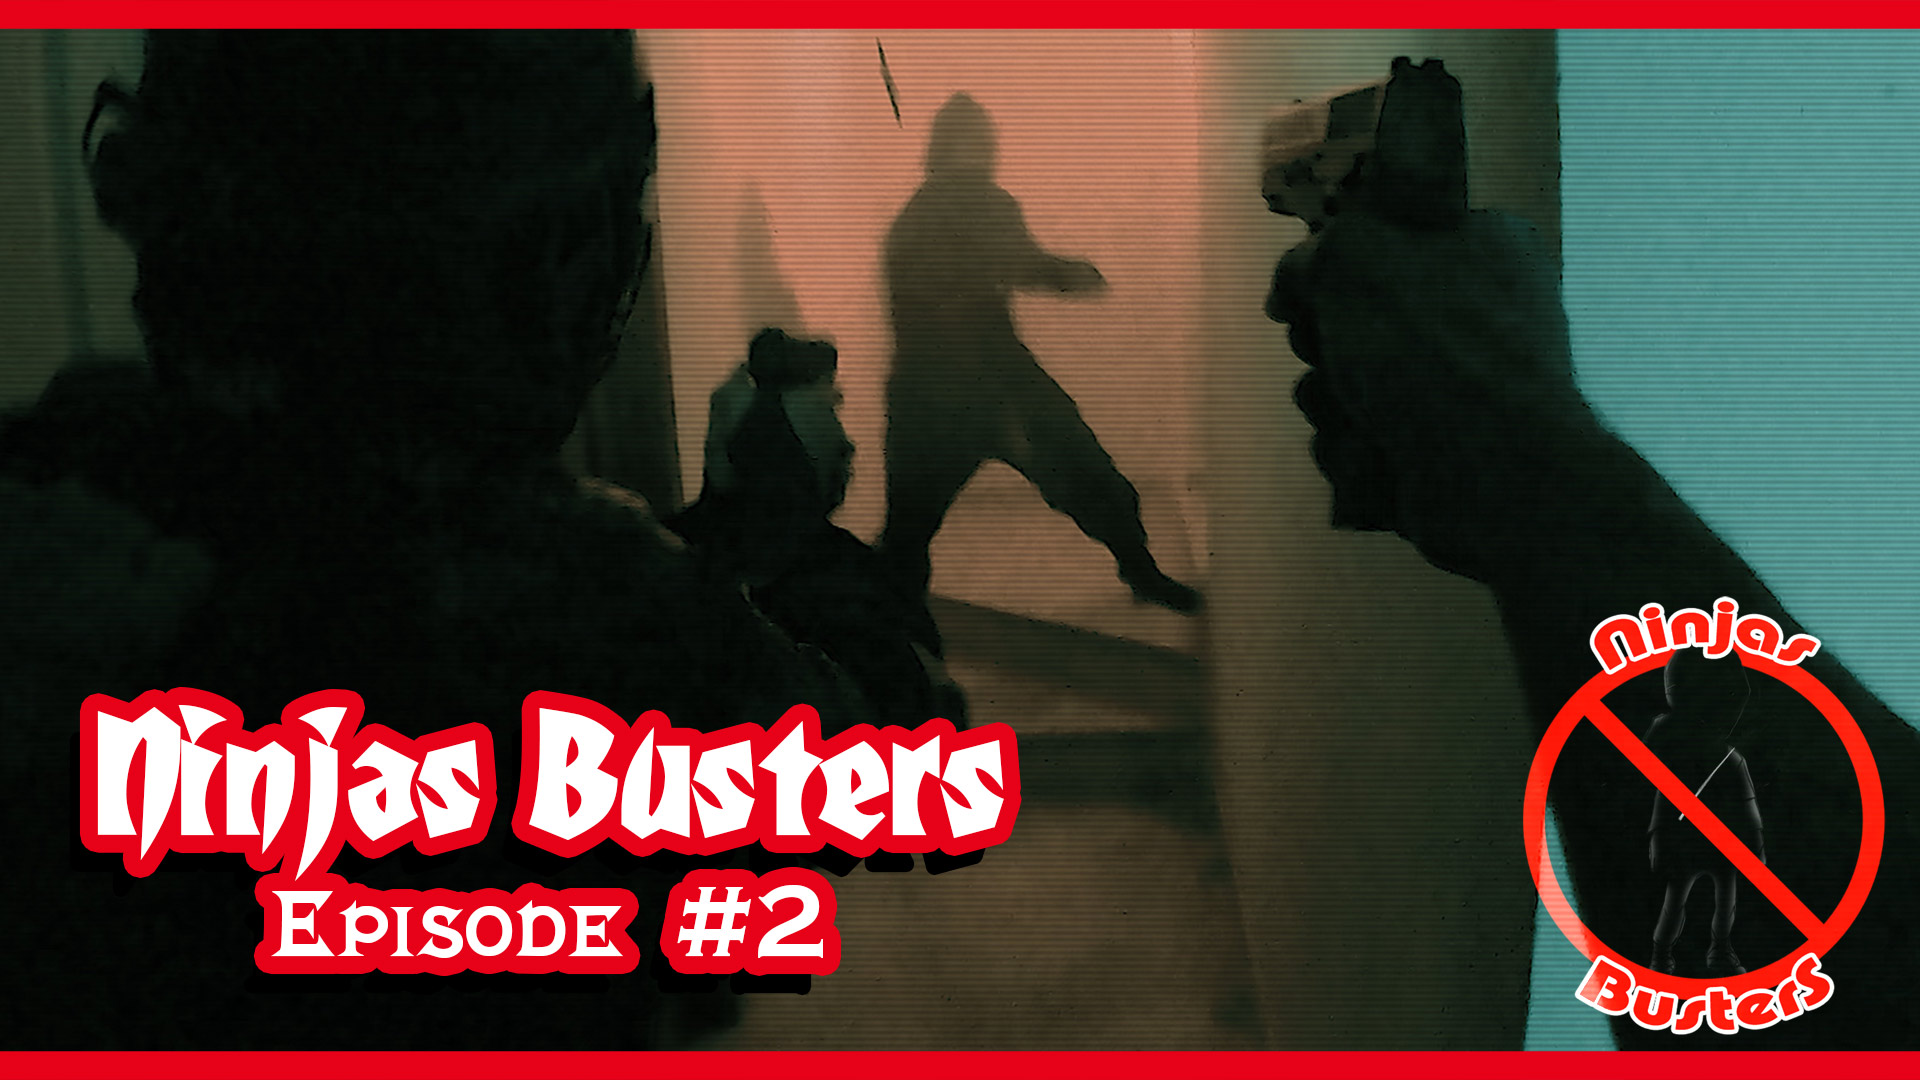 Ninjas Busters Webseries - Emission Fake ou pas Fake